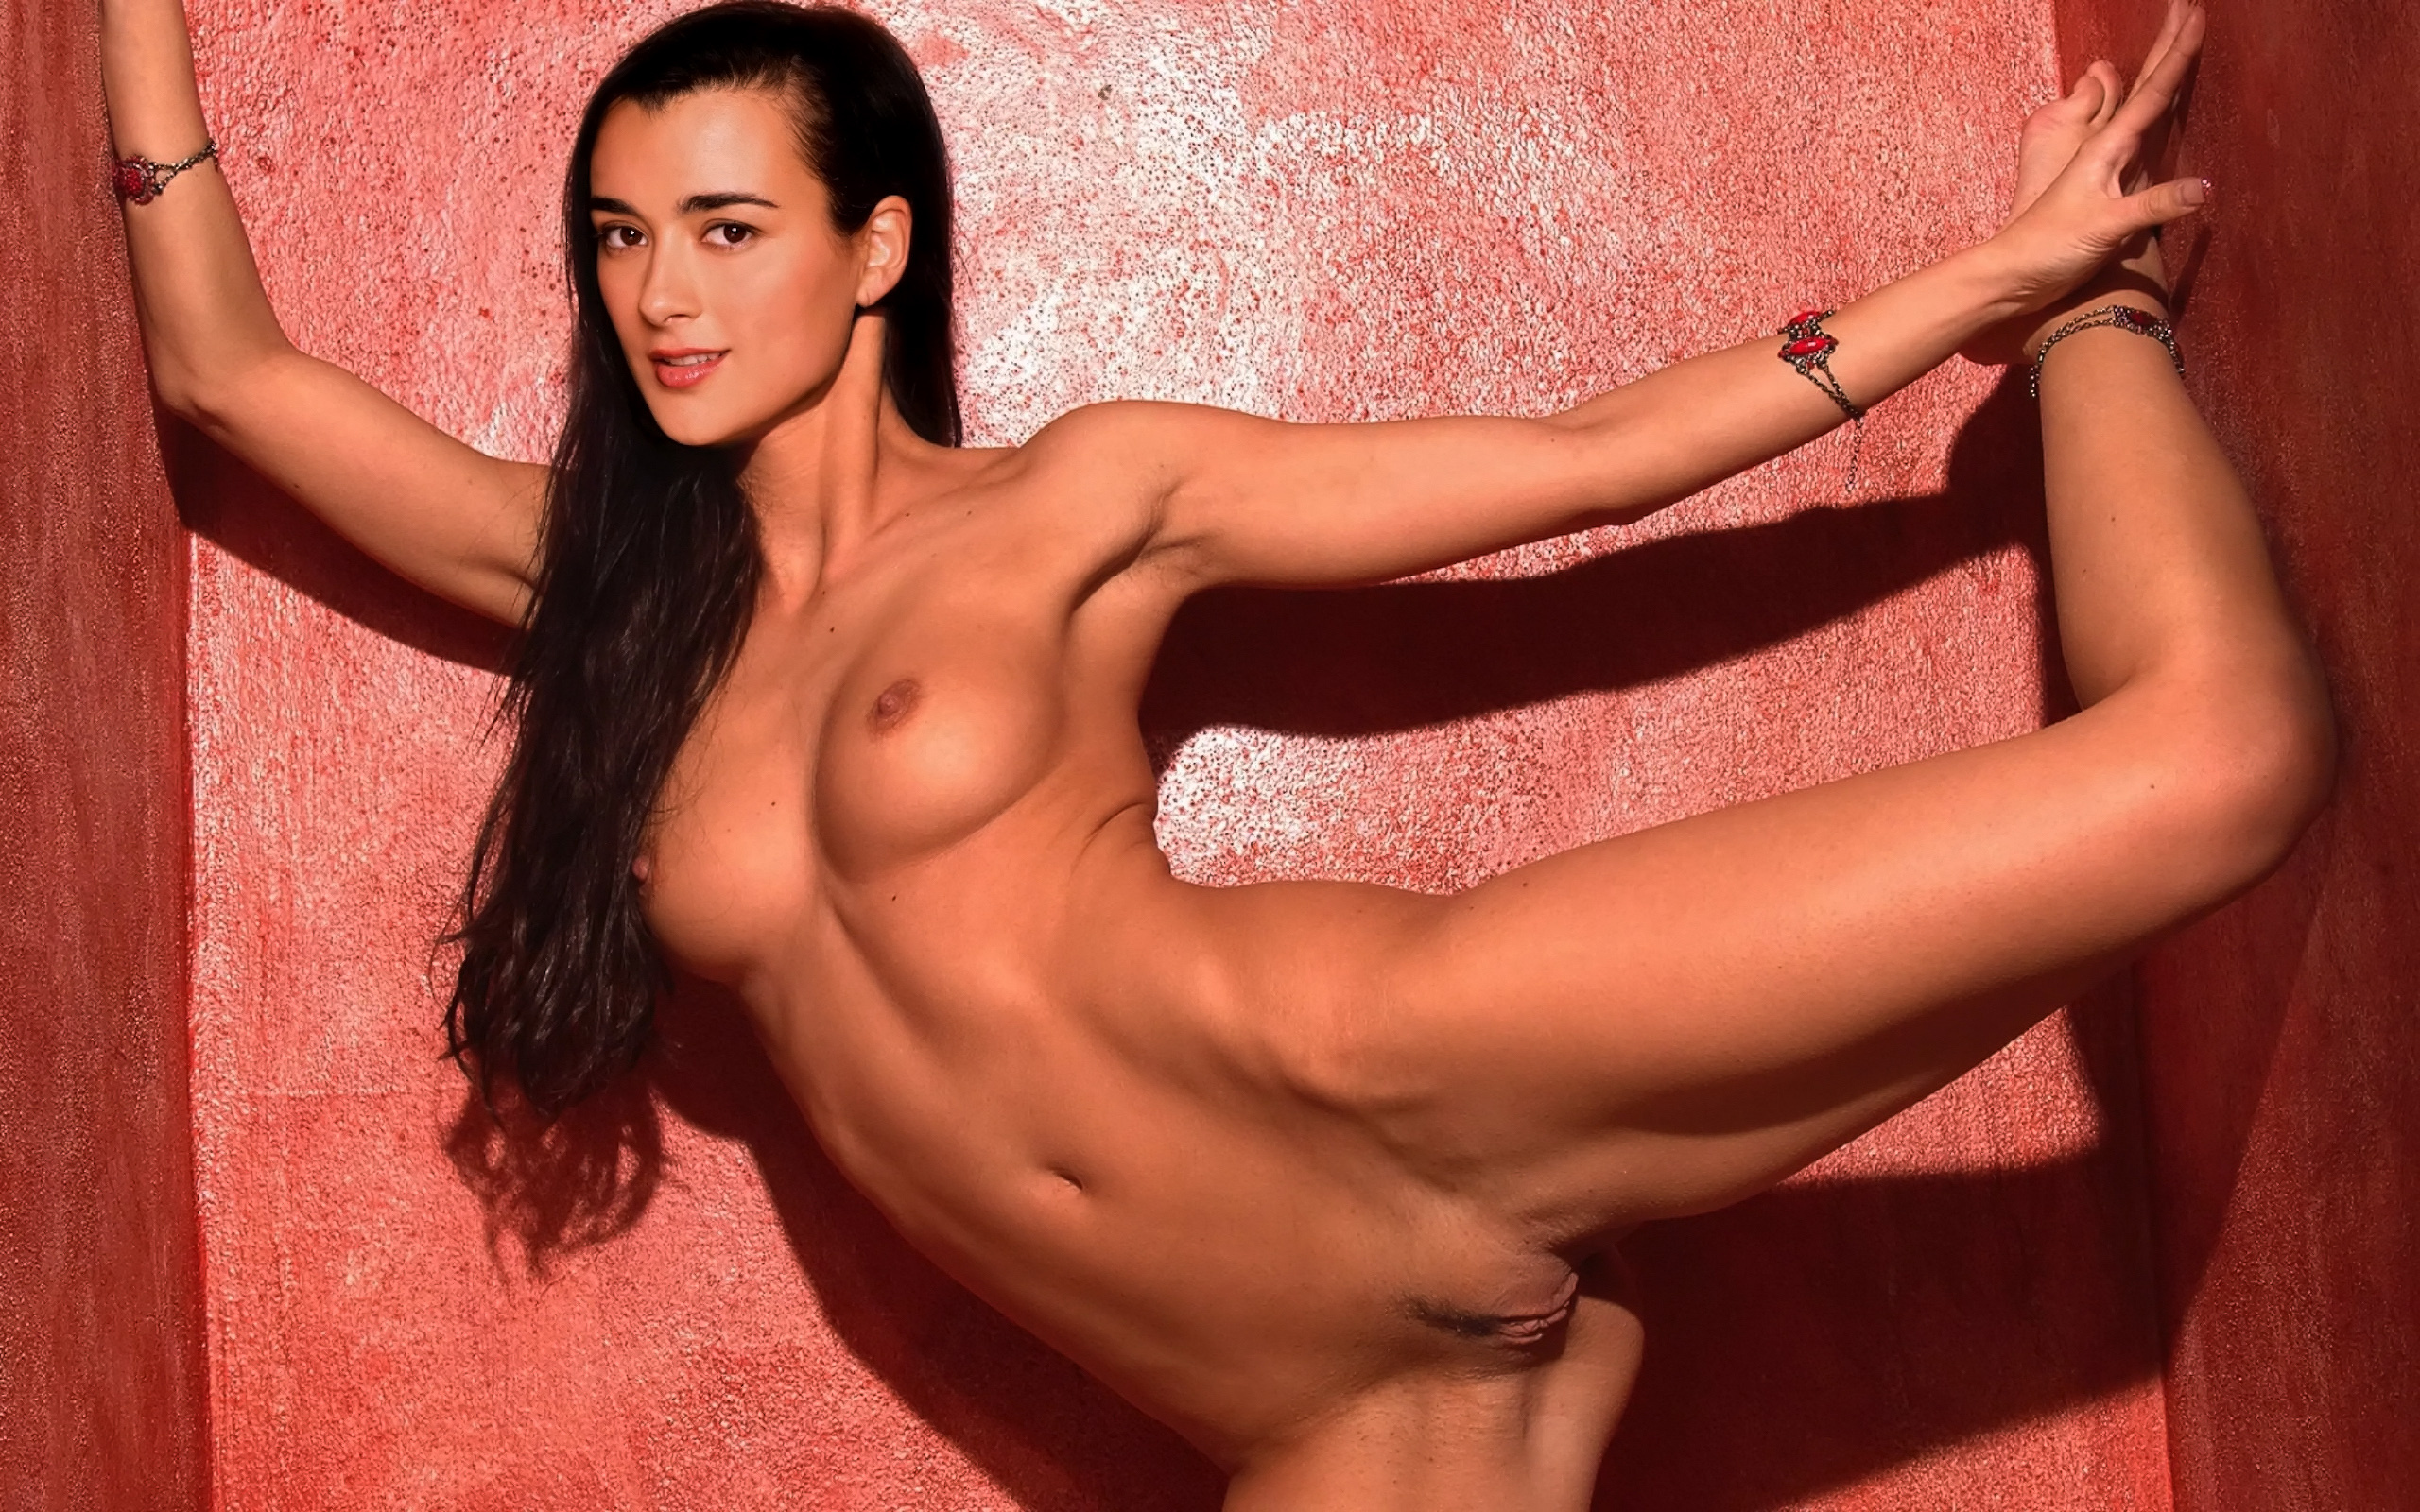 The Girls From Ncis In The Nude